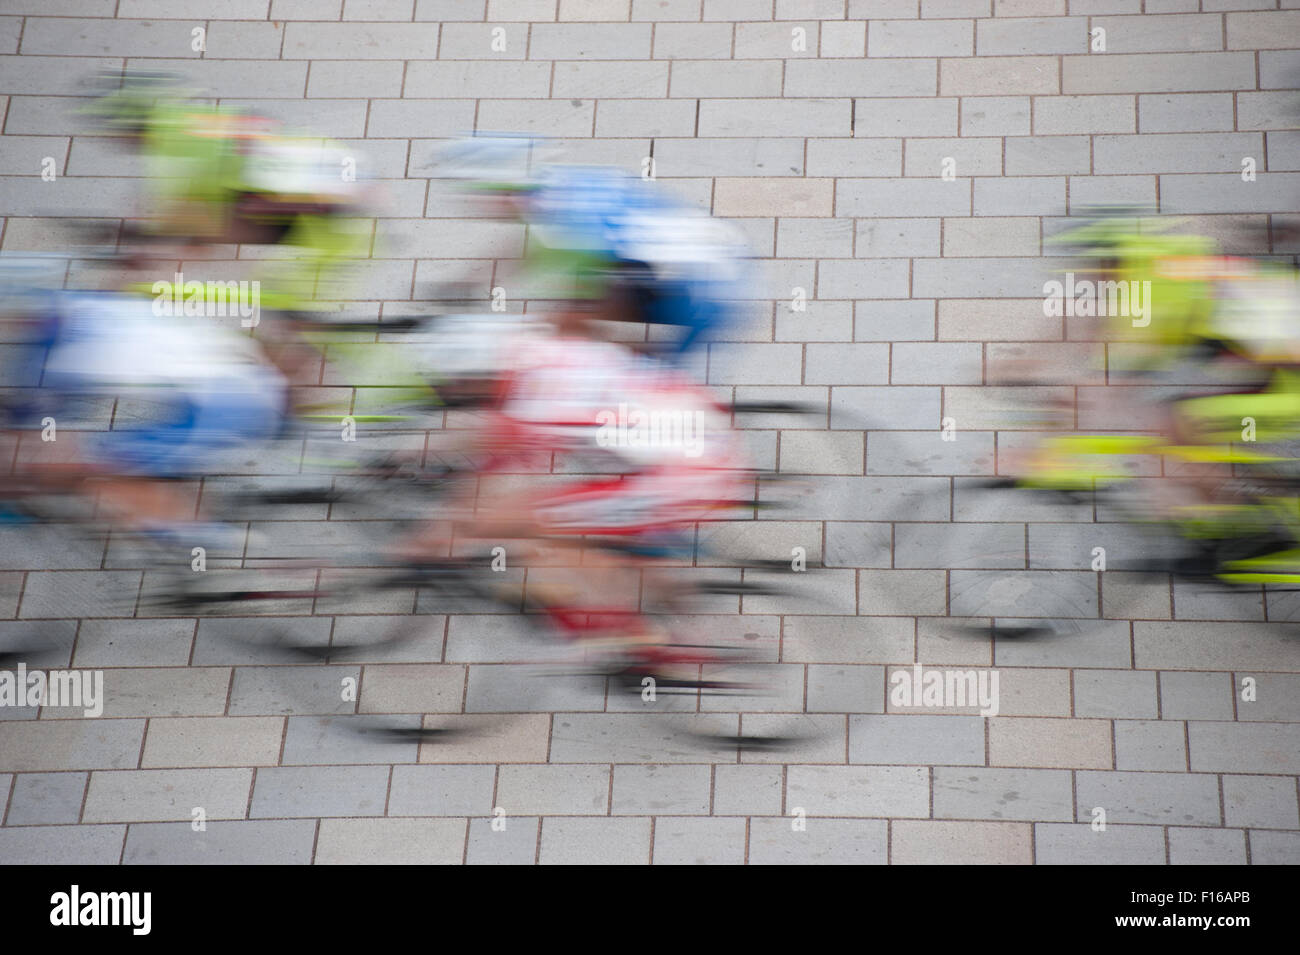 road bicycle racing, motion blur effect - Stock Image